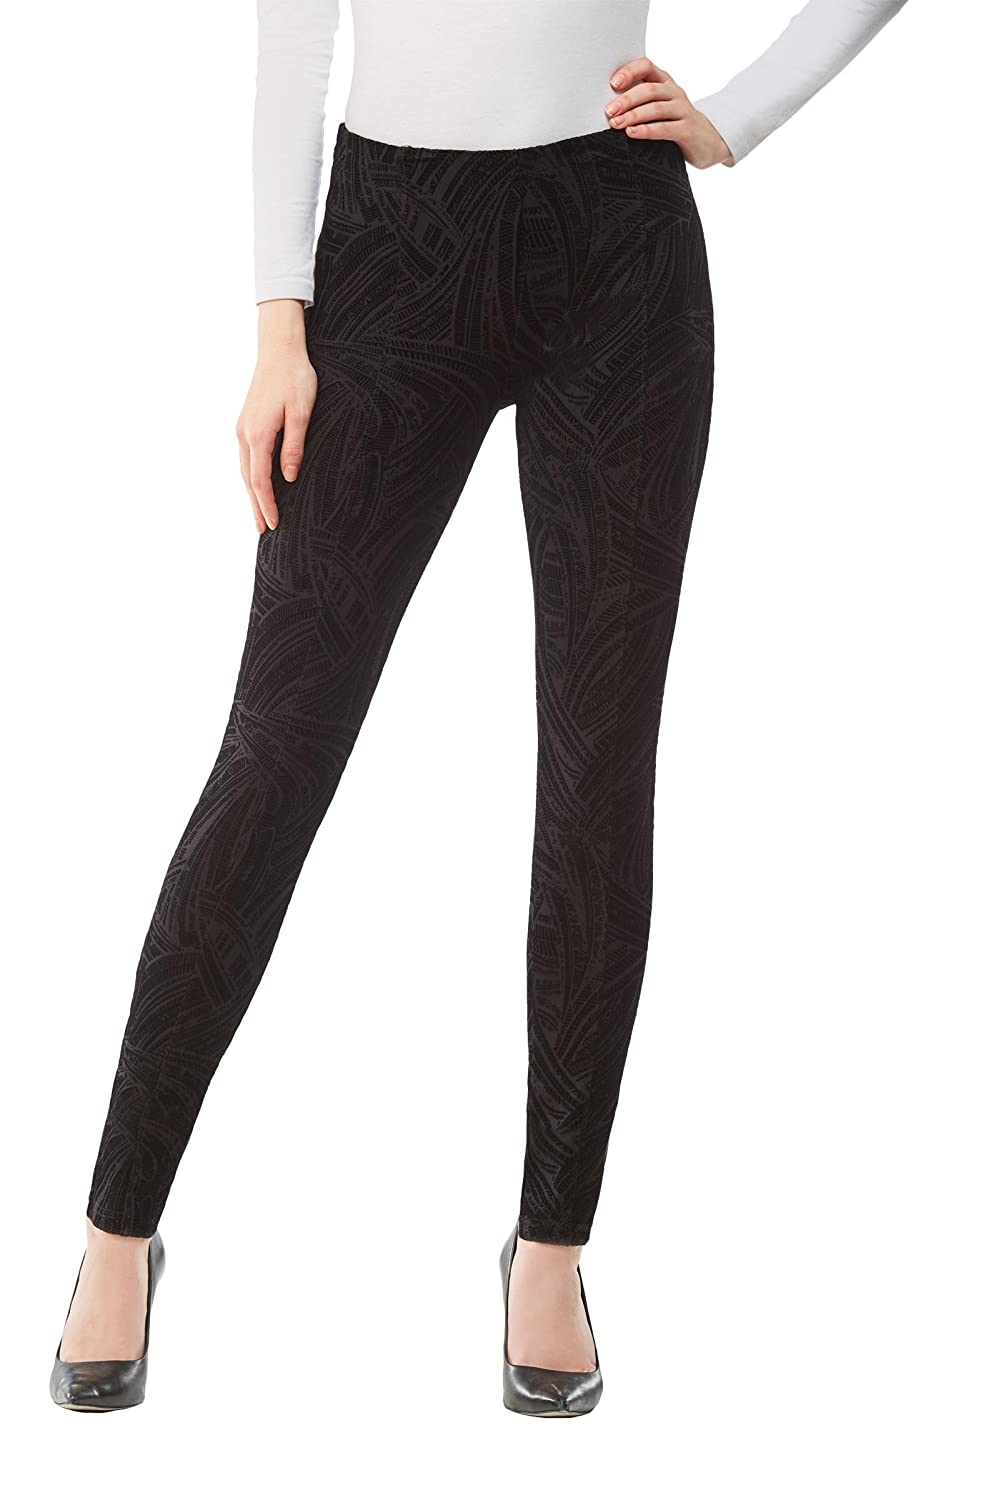 Plus Luxe Legging Black 1X Nygard